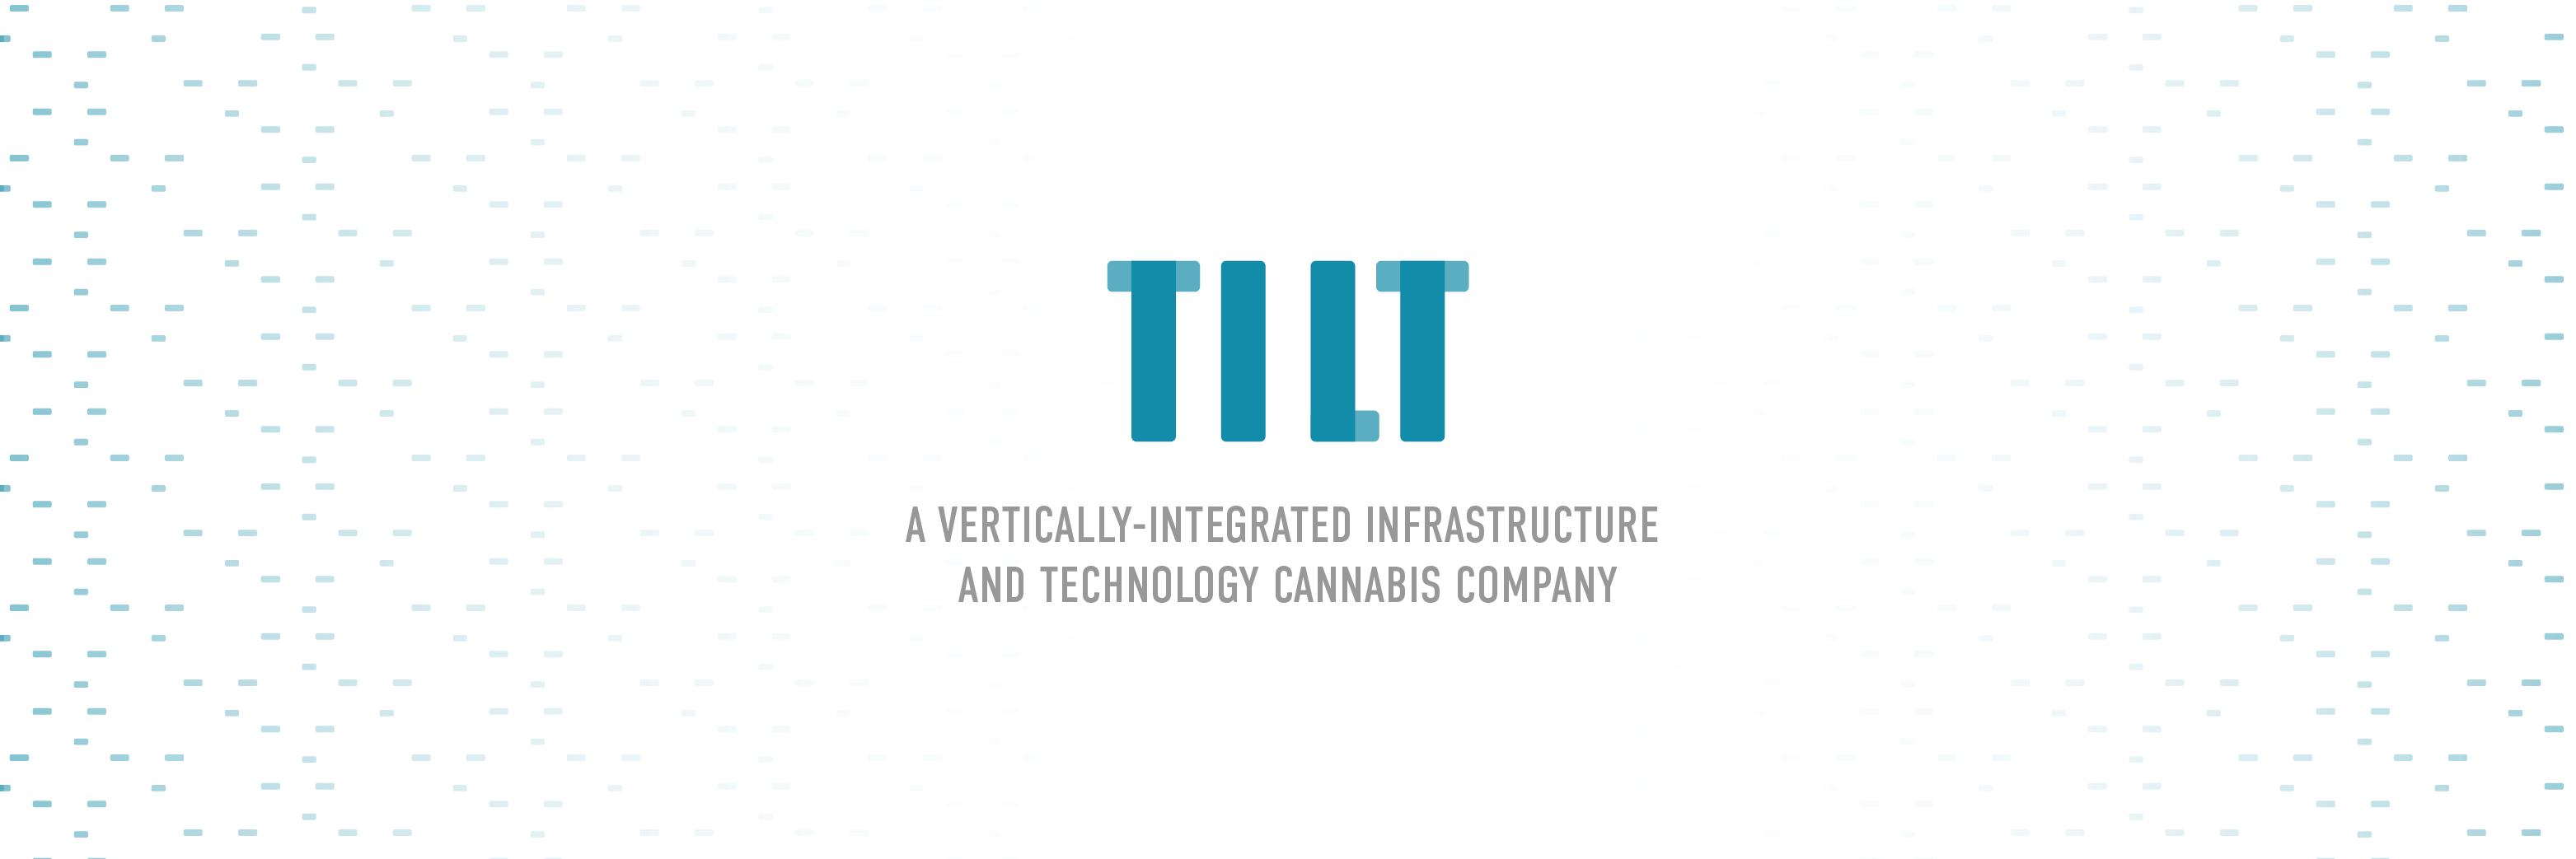 TILT is a vertically-integrated infrastructure and technology company in the cannabis industry